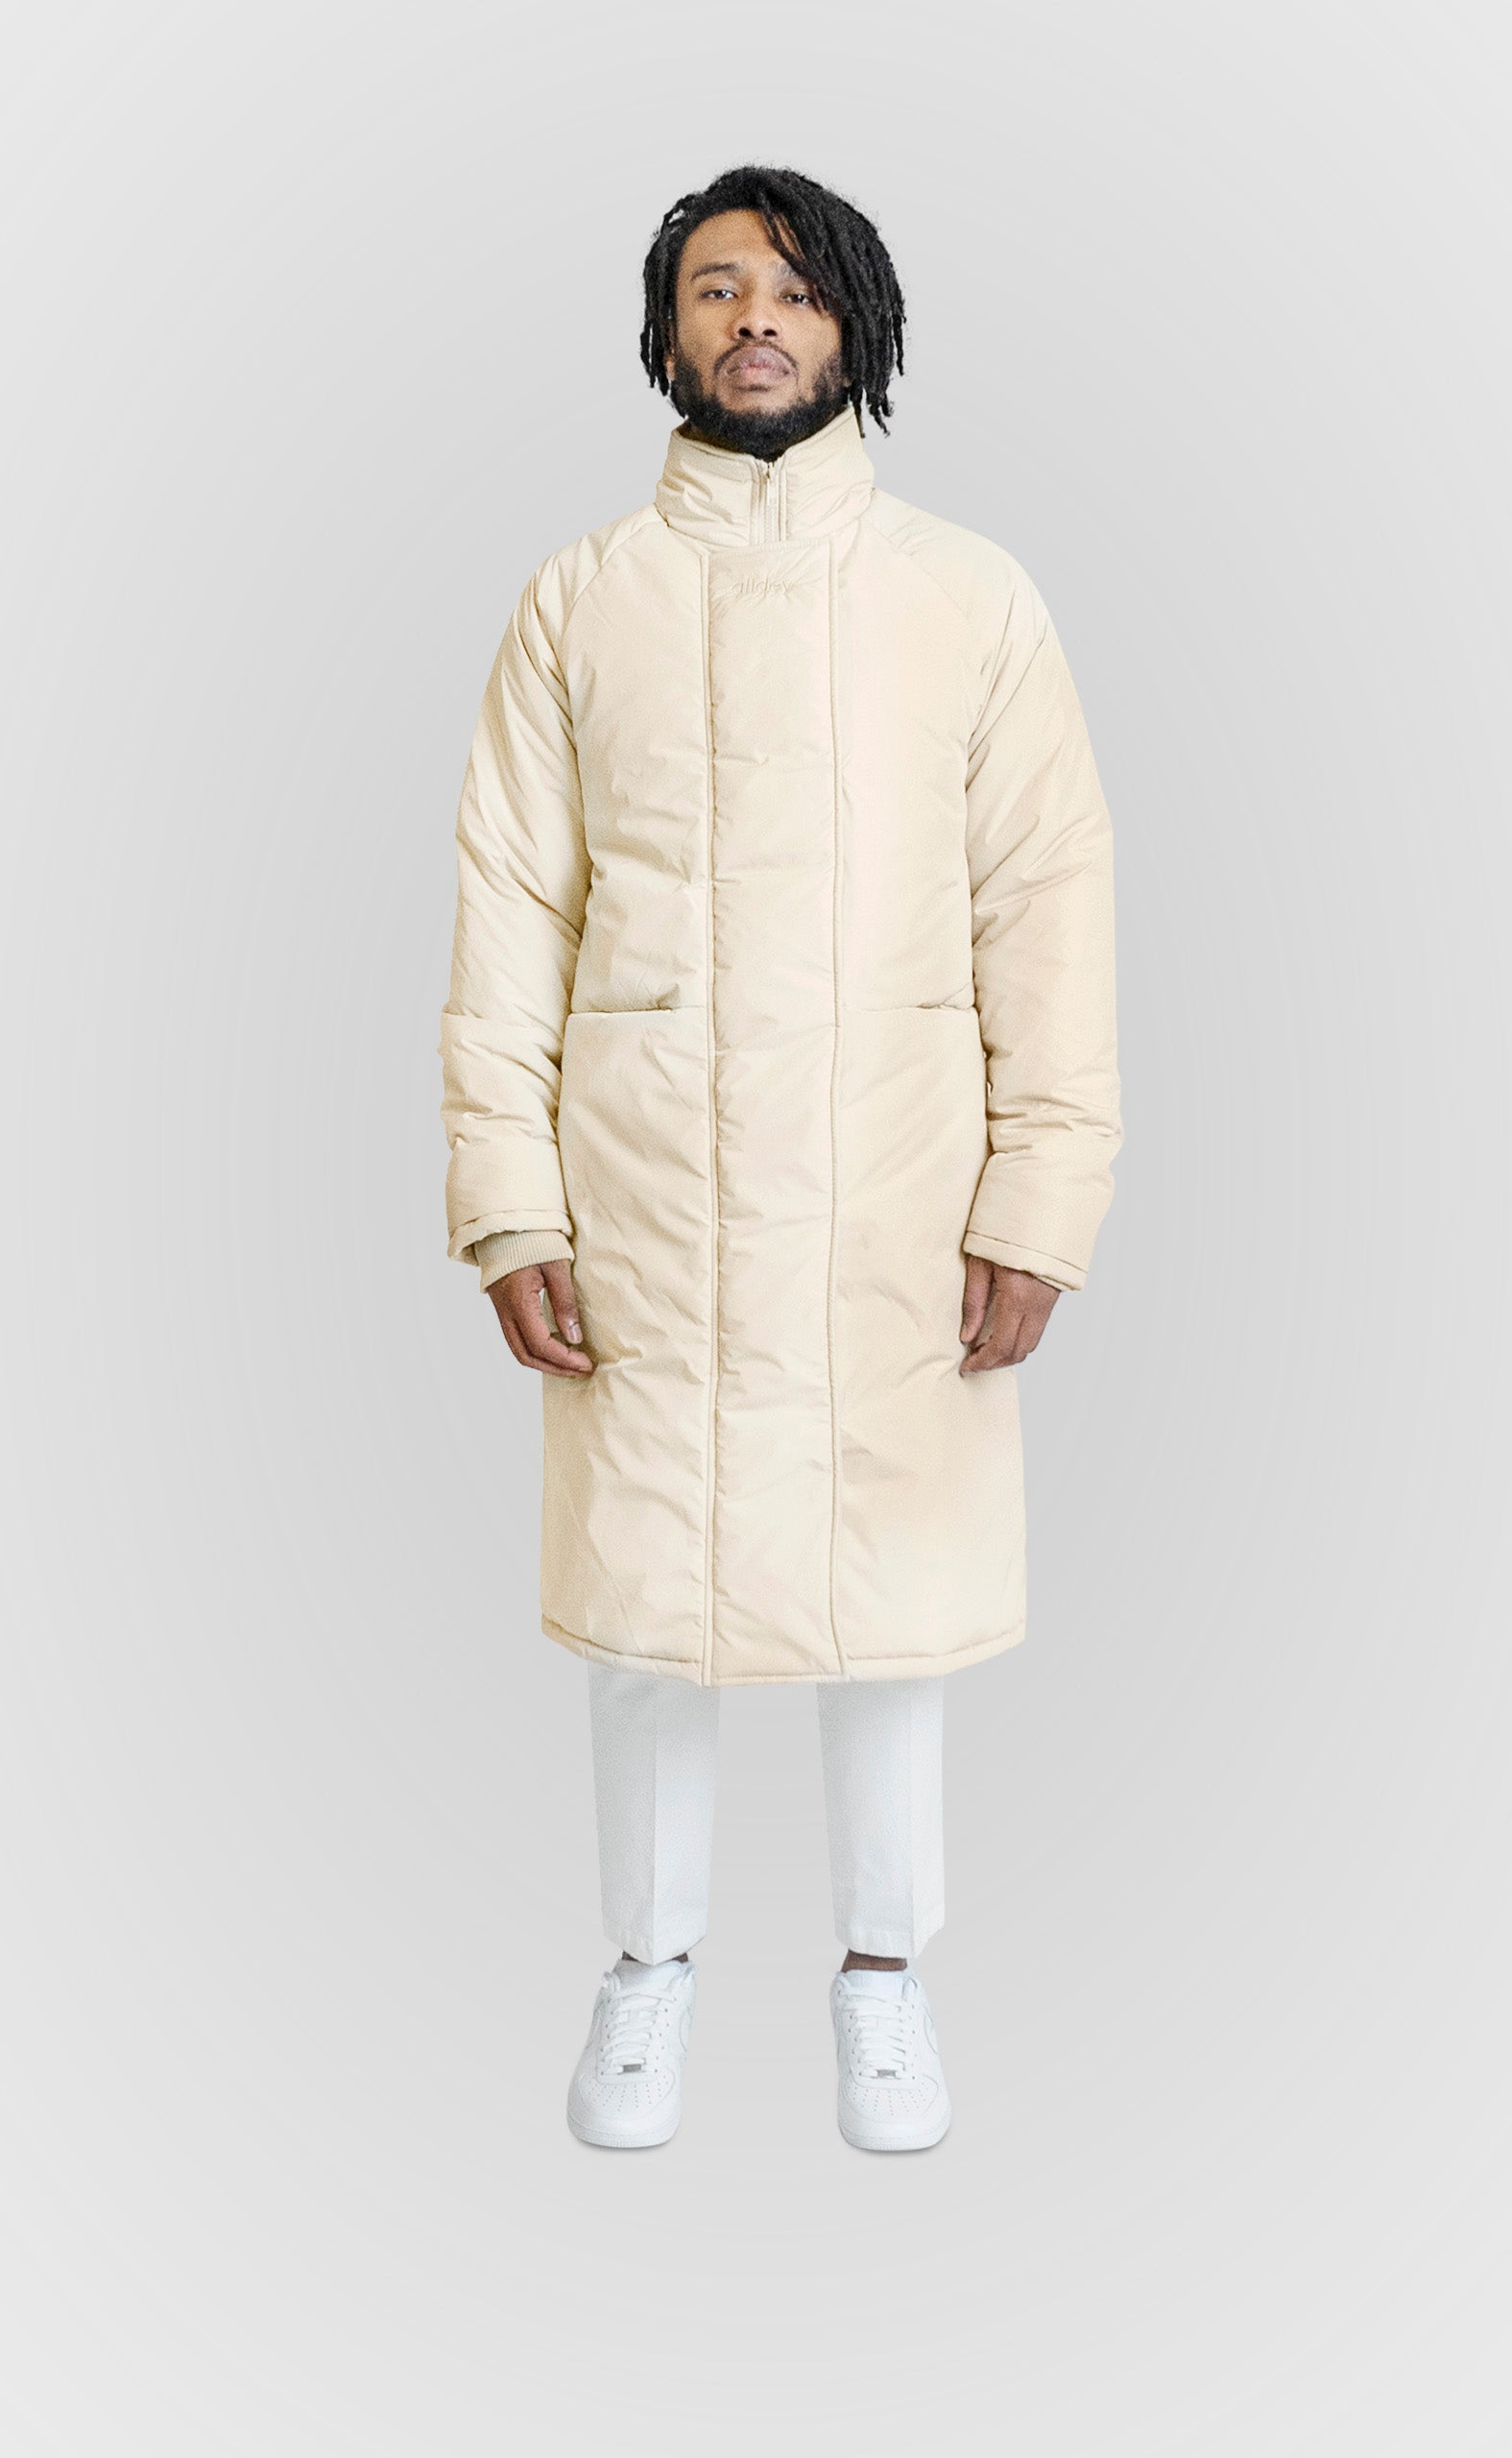 ALLDEY CREAM LONG DOWN JACKET - ALLDEY